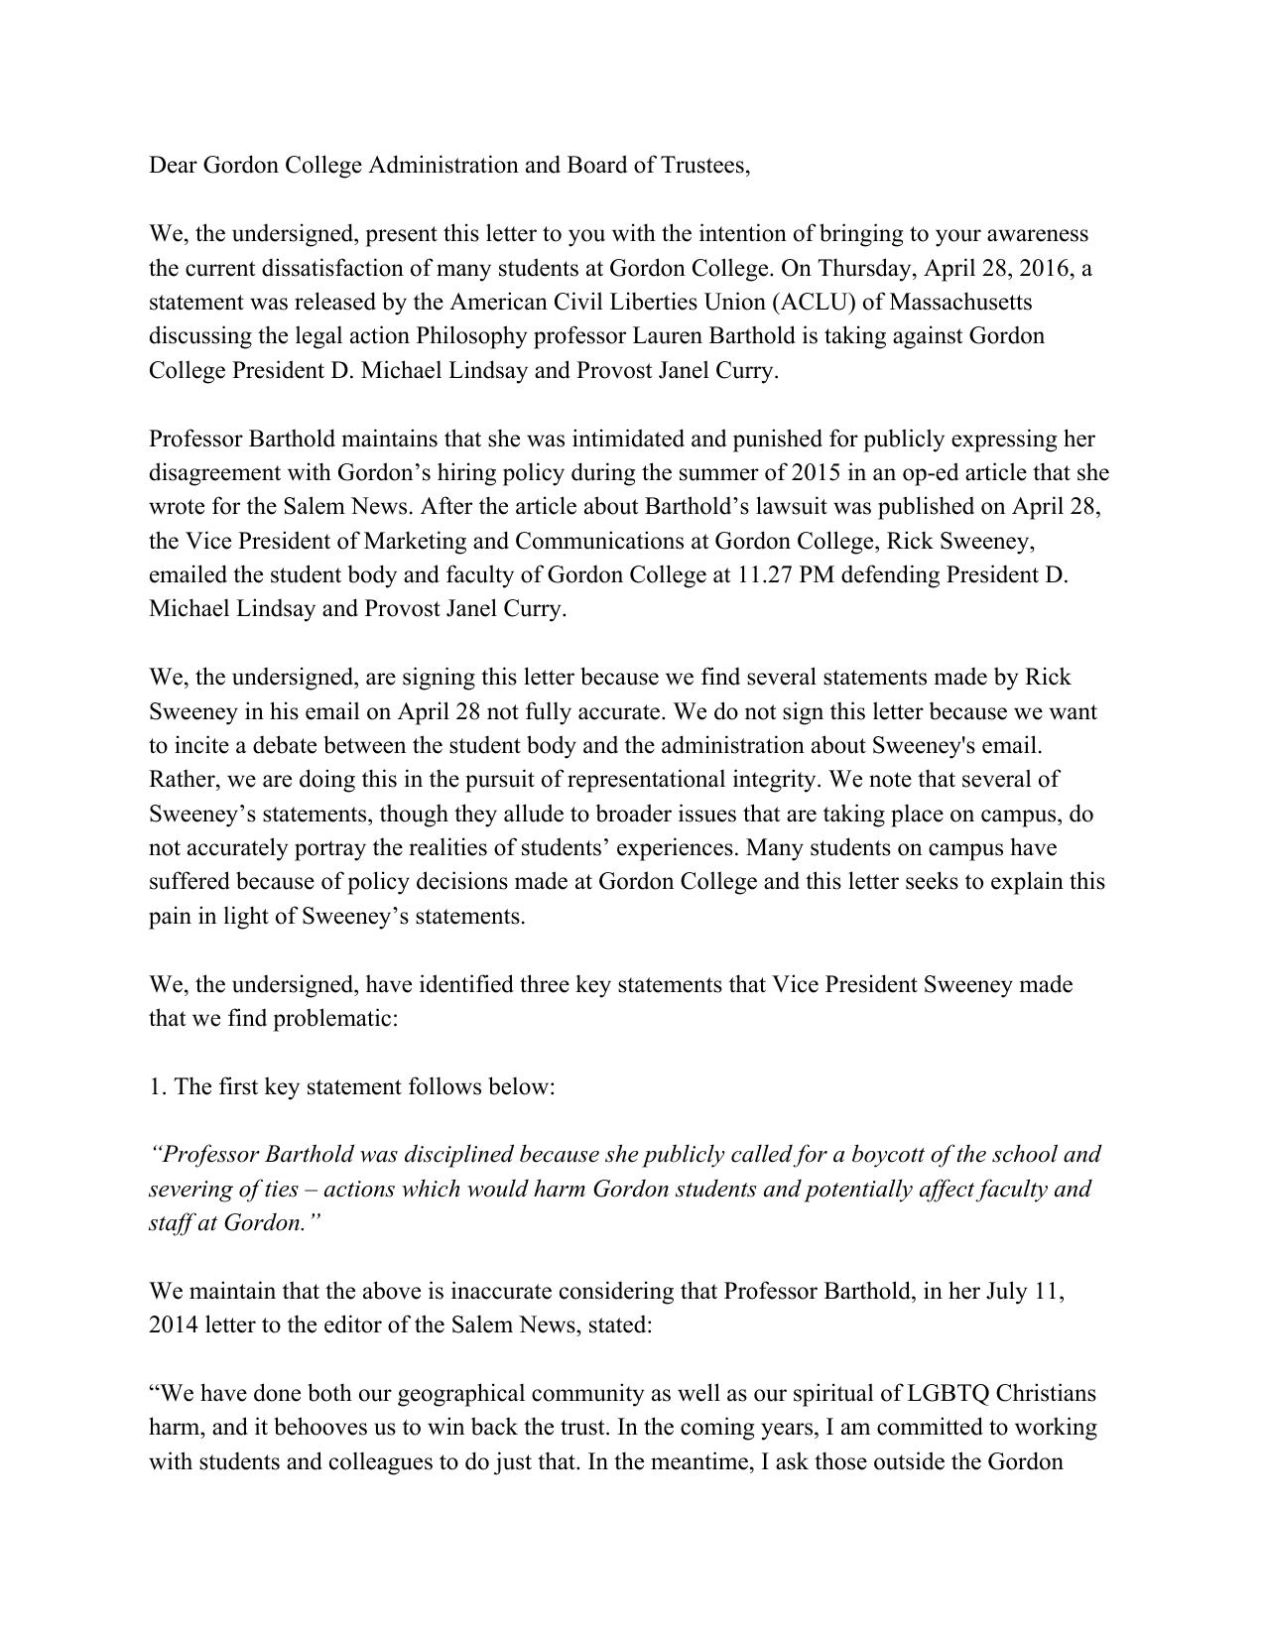 Download PDF Gordon College Student Letter To Administration